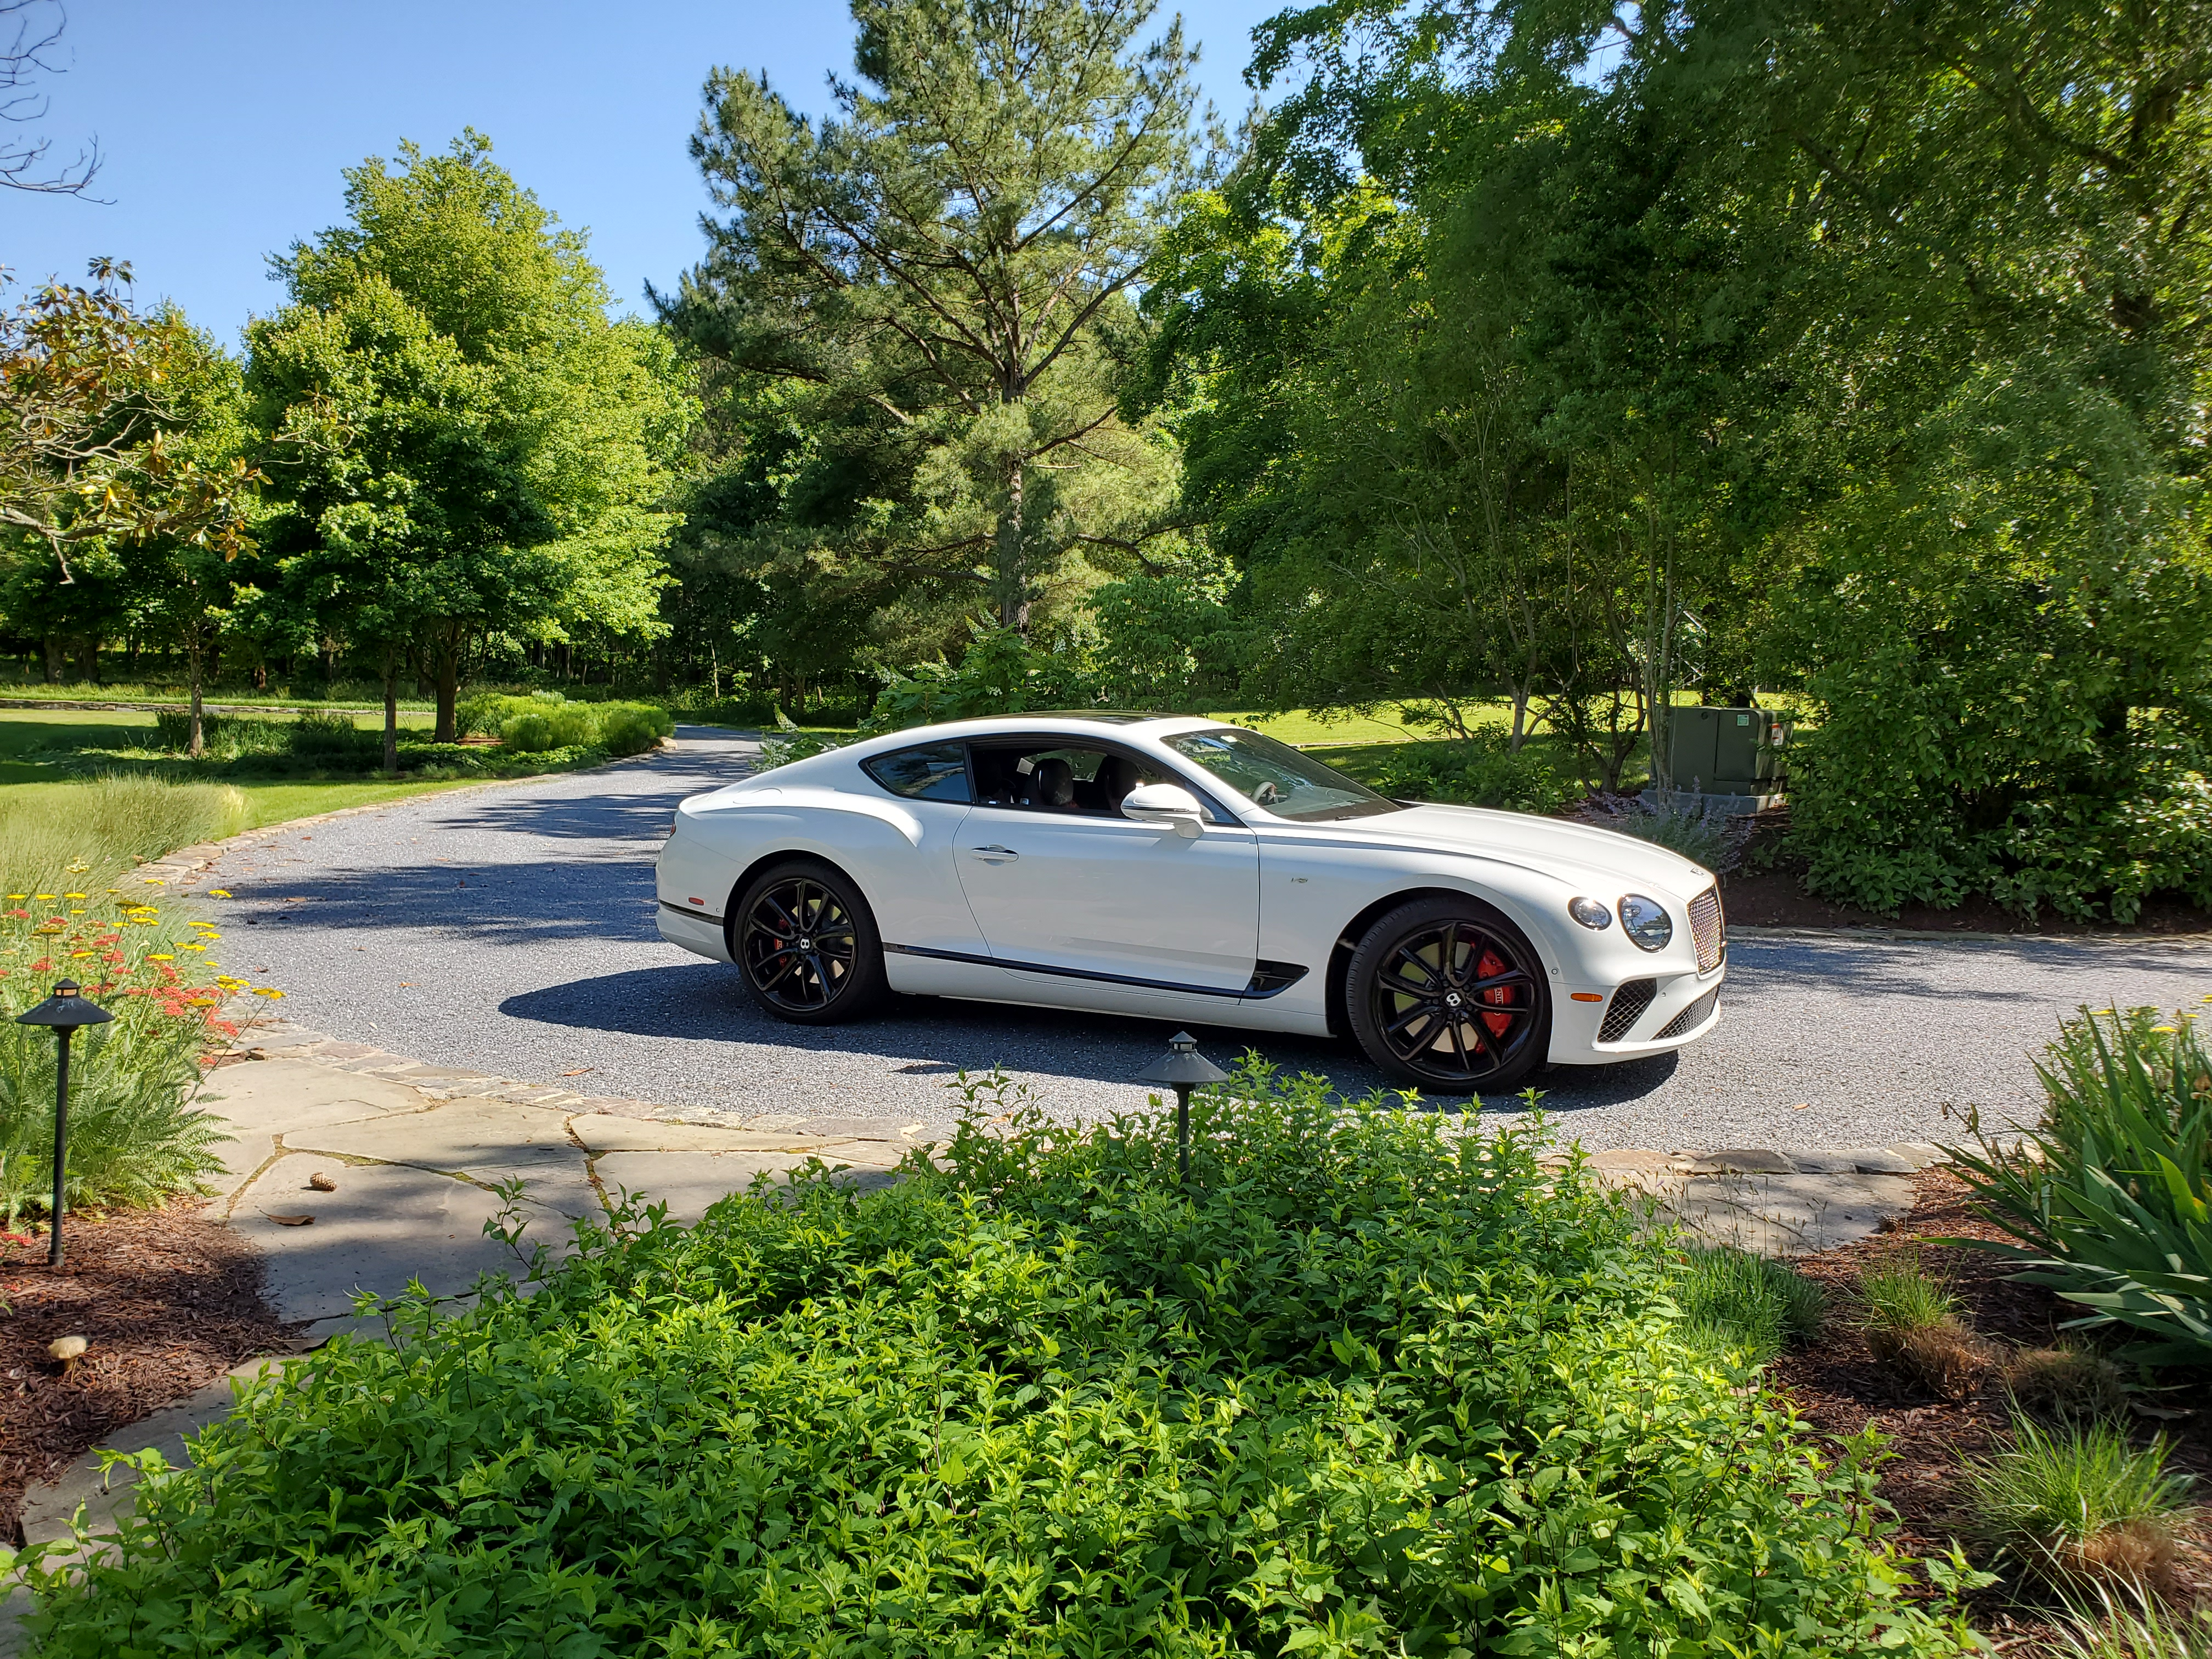 bentley continental gt v8 in ice on gravel driveway with greenery surrounding it